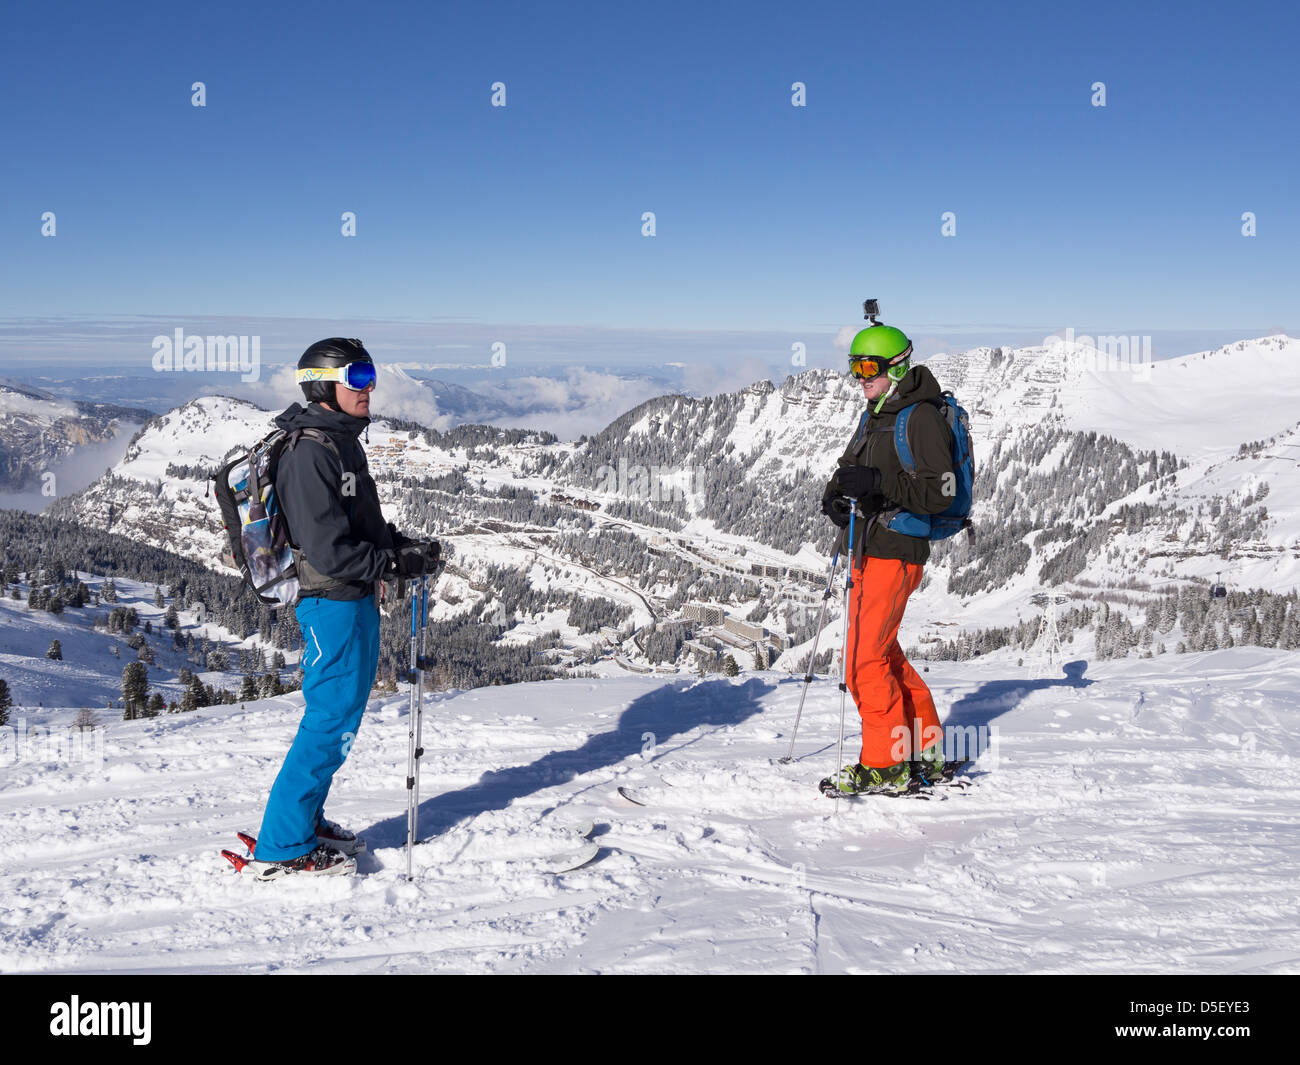 Two skiers skiing on blue snow slope Traversee Damant Noir in Le Grand Massif ski area in French Alps above Flaine - Stock Image